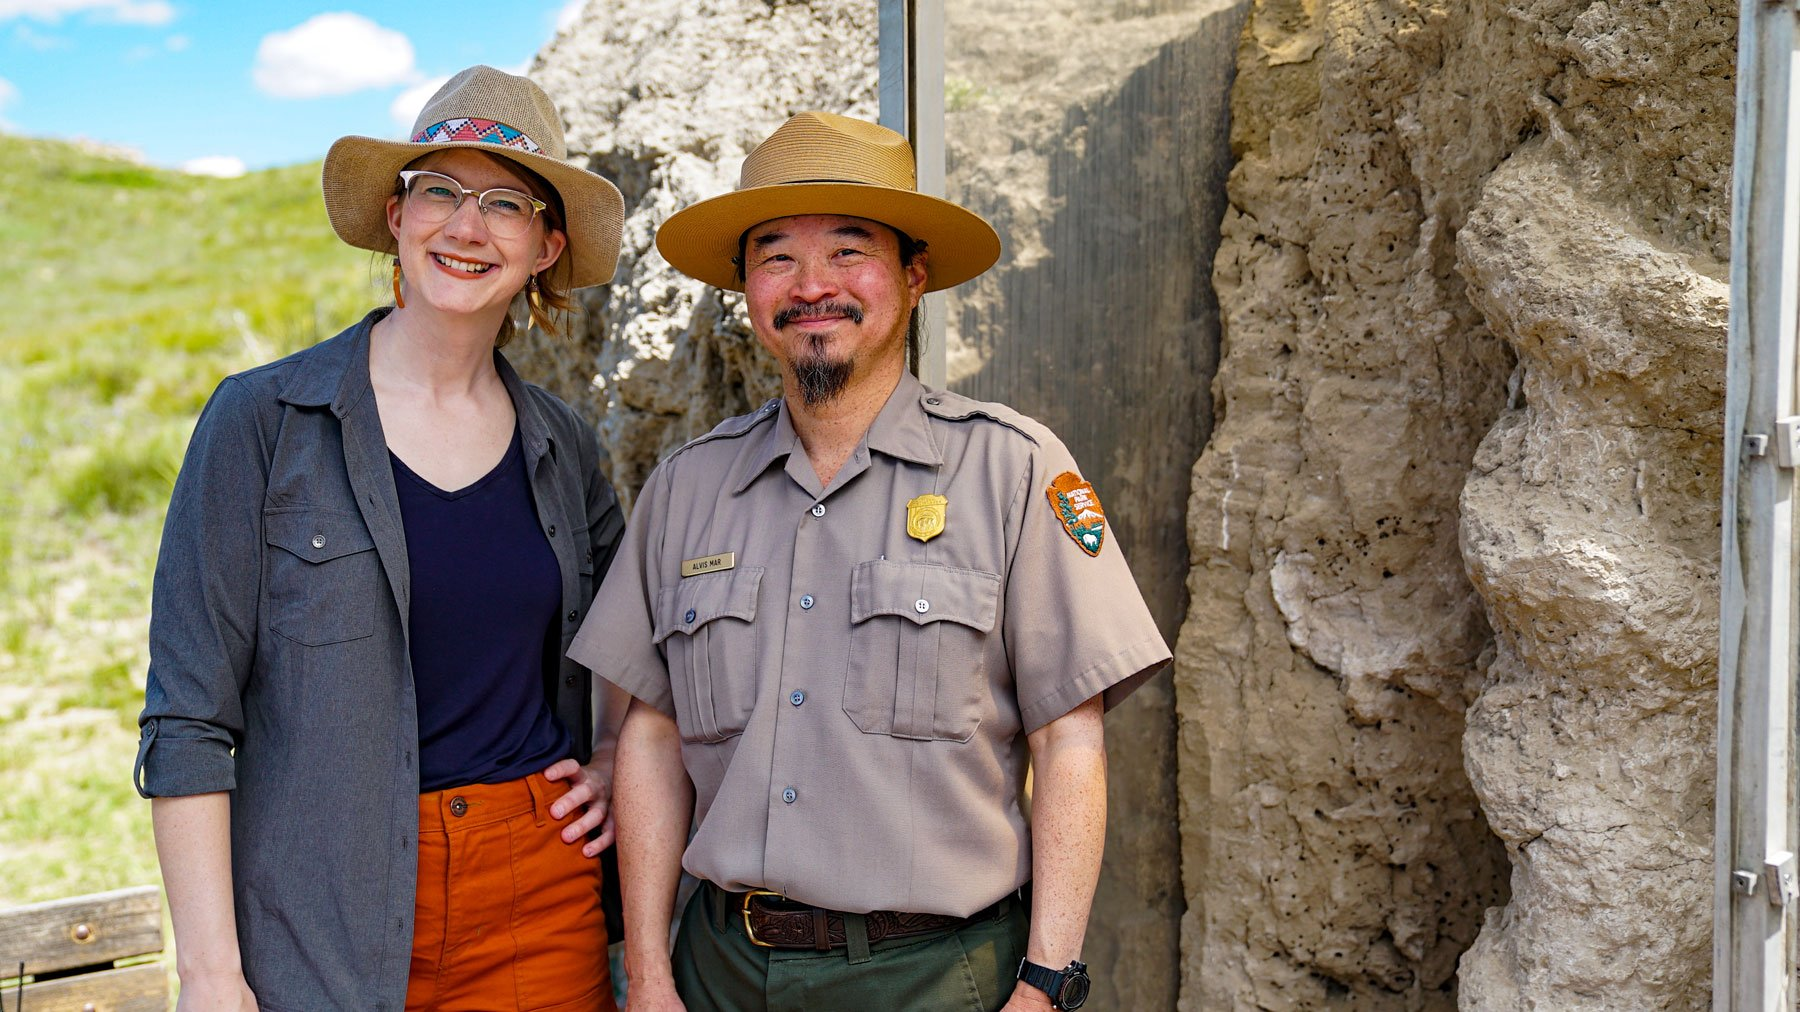 Emily Graslie and Agate Fossil Beds ranger Alvis Mar stand next to a fossil display of a daemonelix